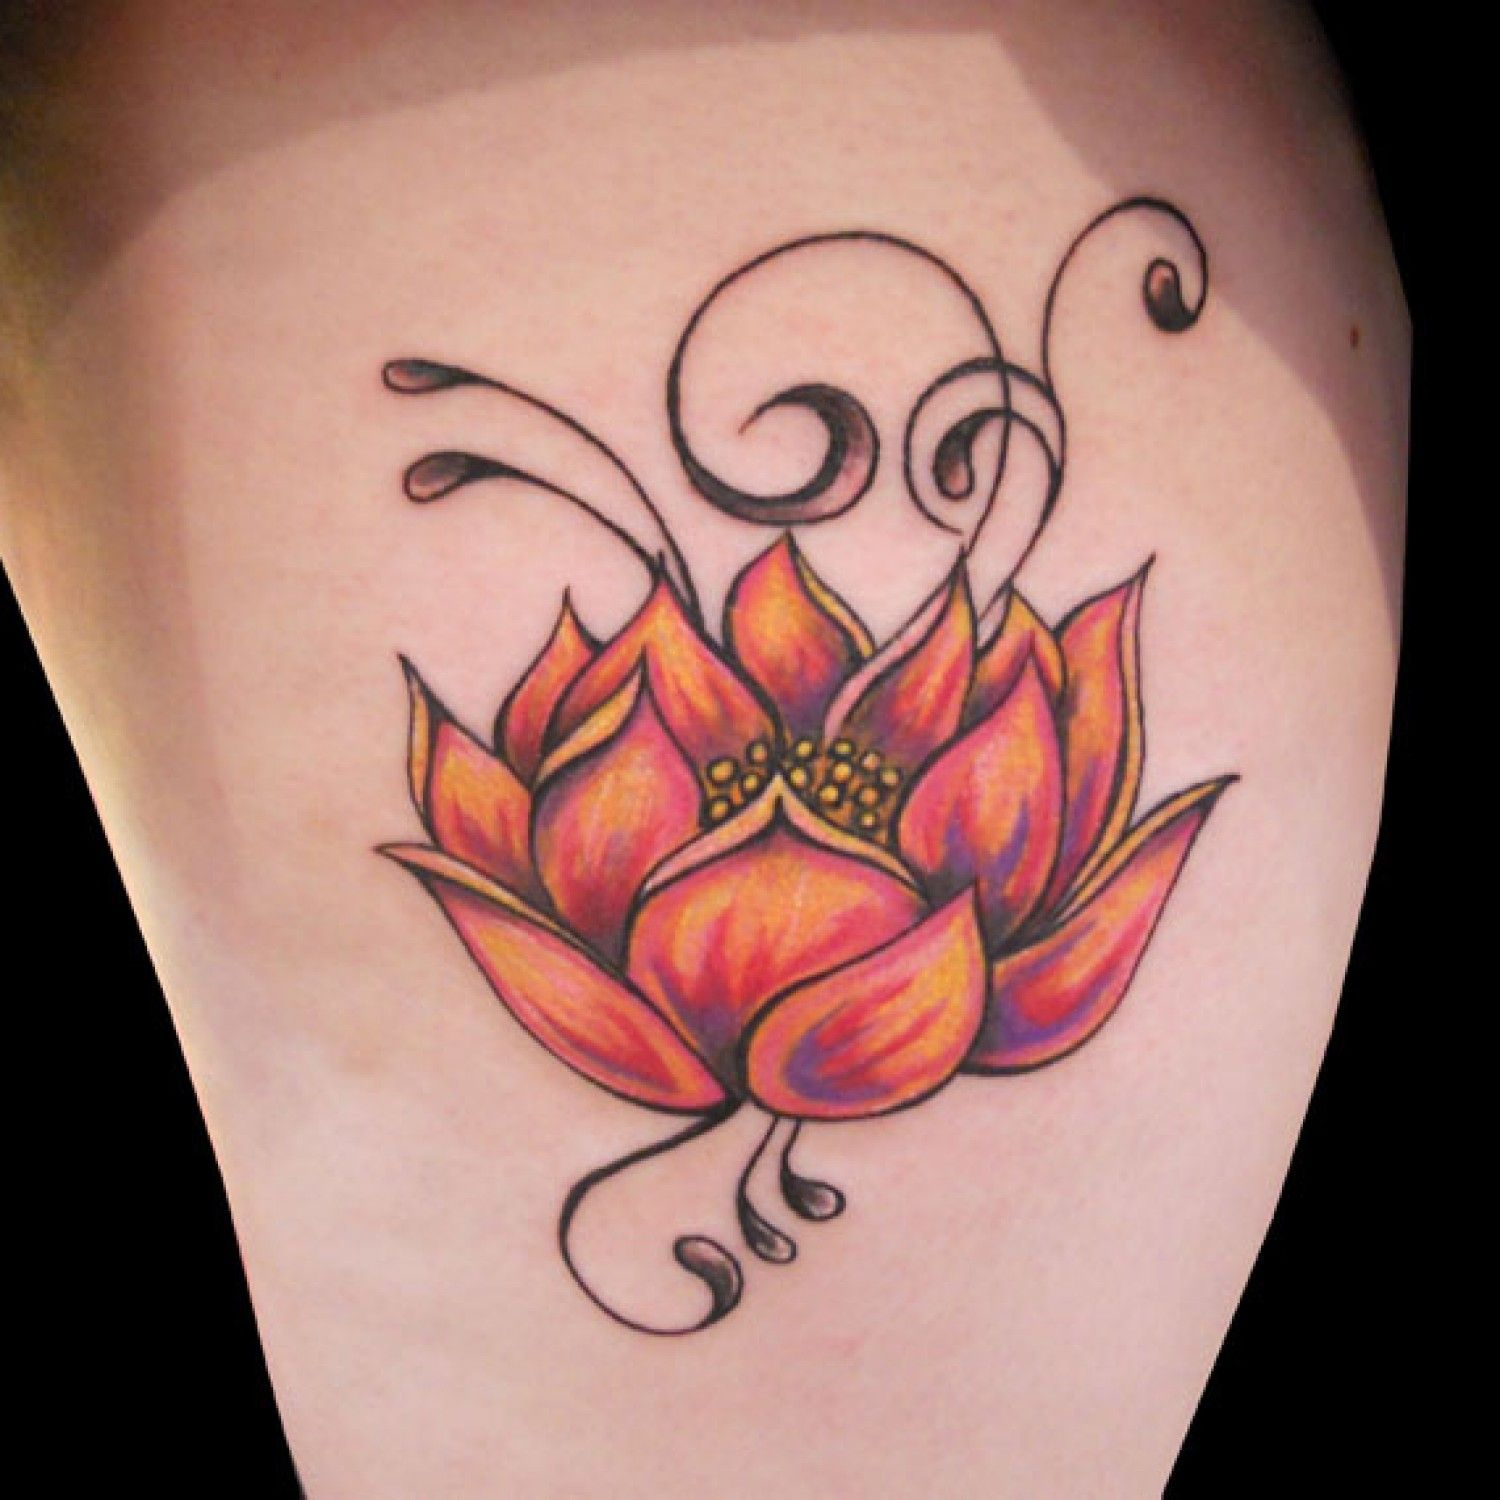 Red tribal lotus flower tattoo design httptattooideastrend red tribal lotus flower tattoo design httptattooideastrendred tribal lotus flower tattoo design izmirmasajfo